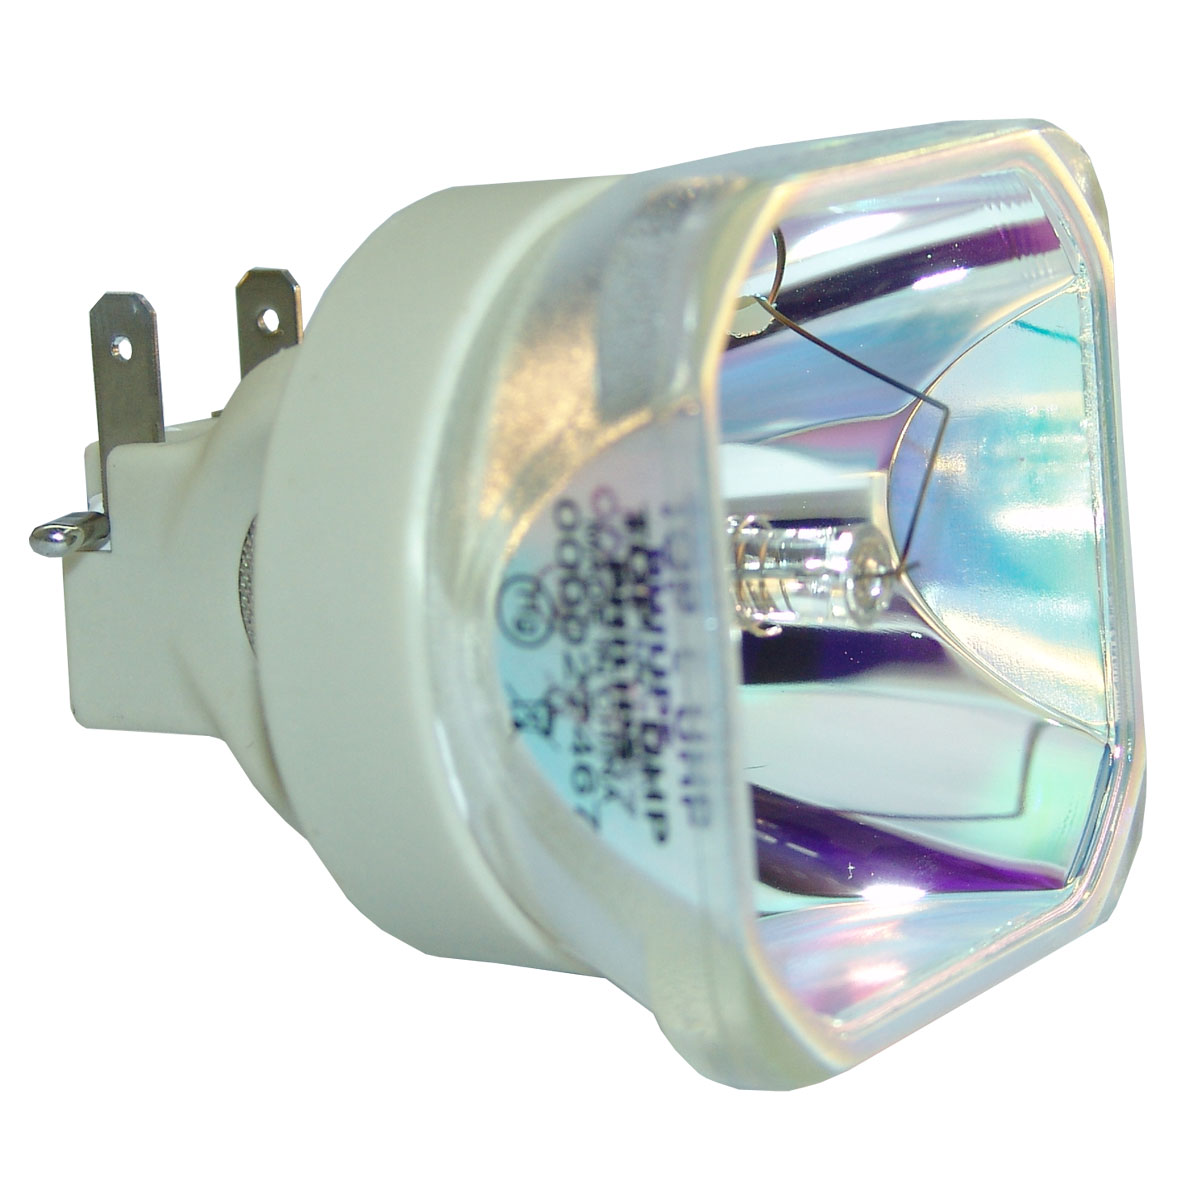 Lutema Platinum for Sanyo PLC-XU4000 Projector Lamp (Original Philips Bulb) - image 4 of 5